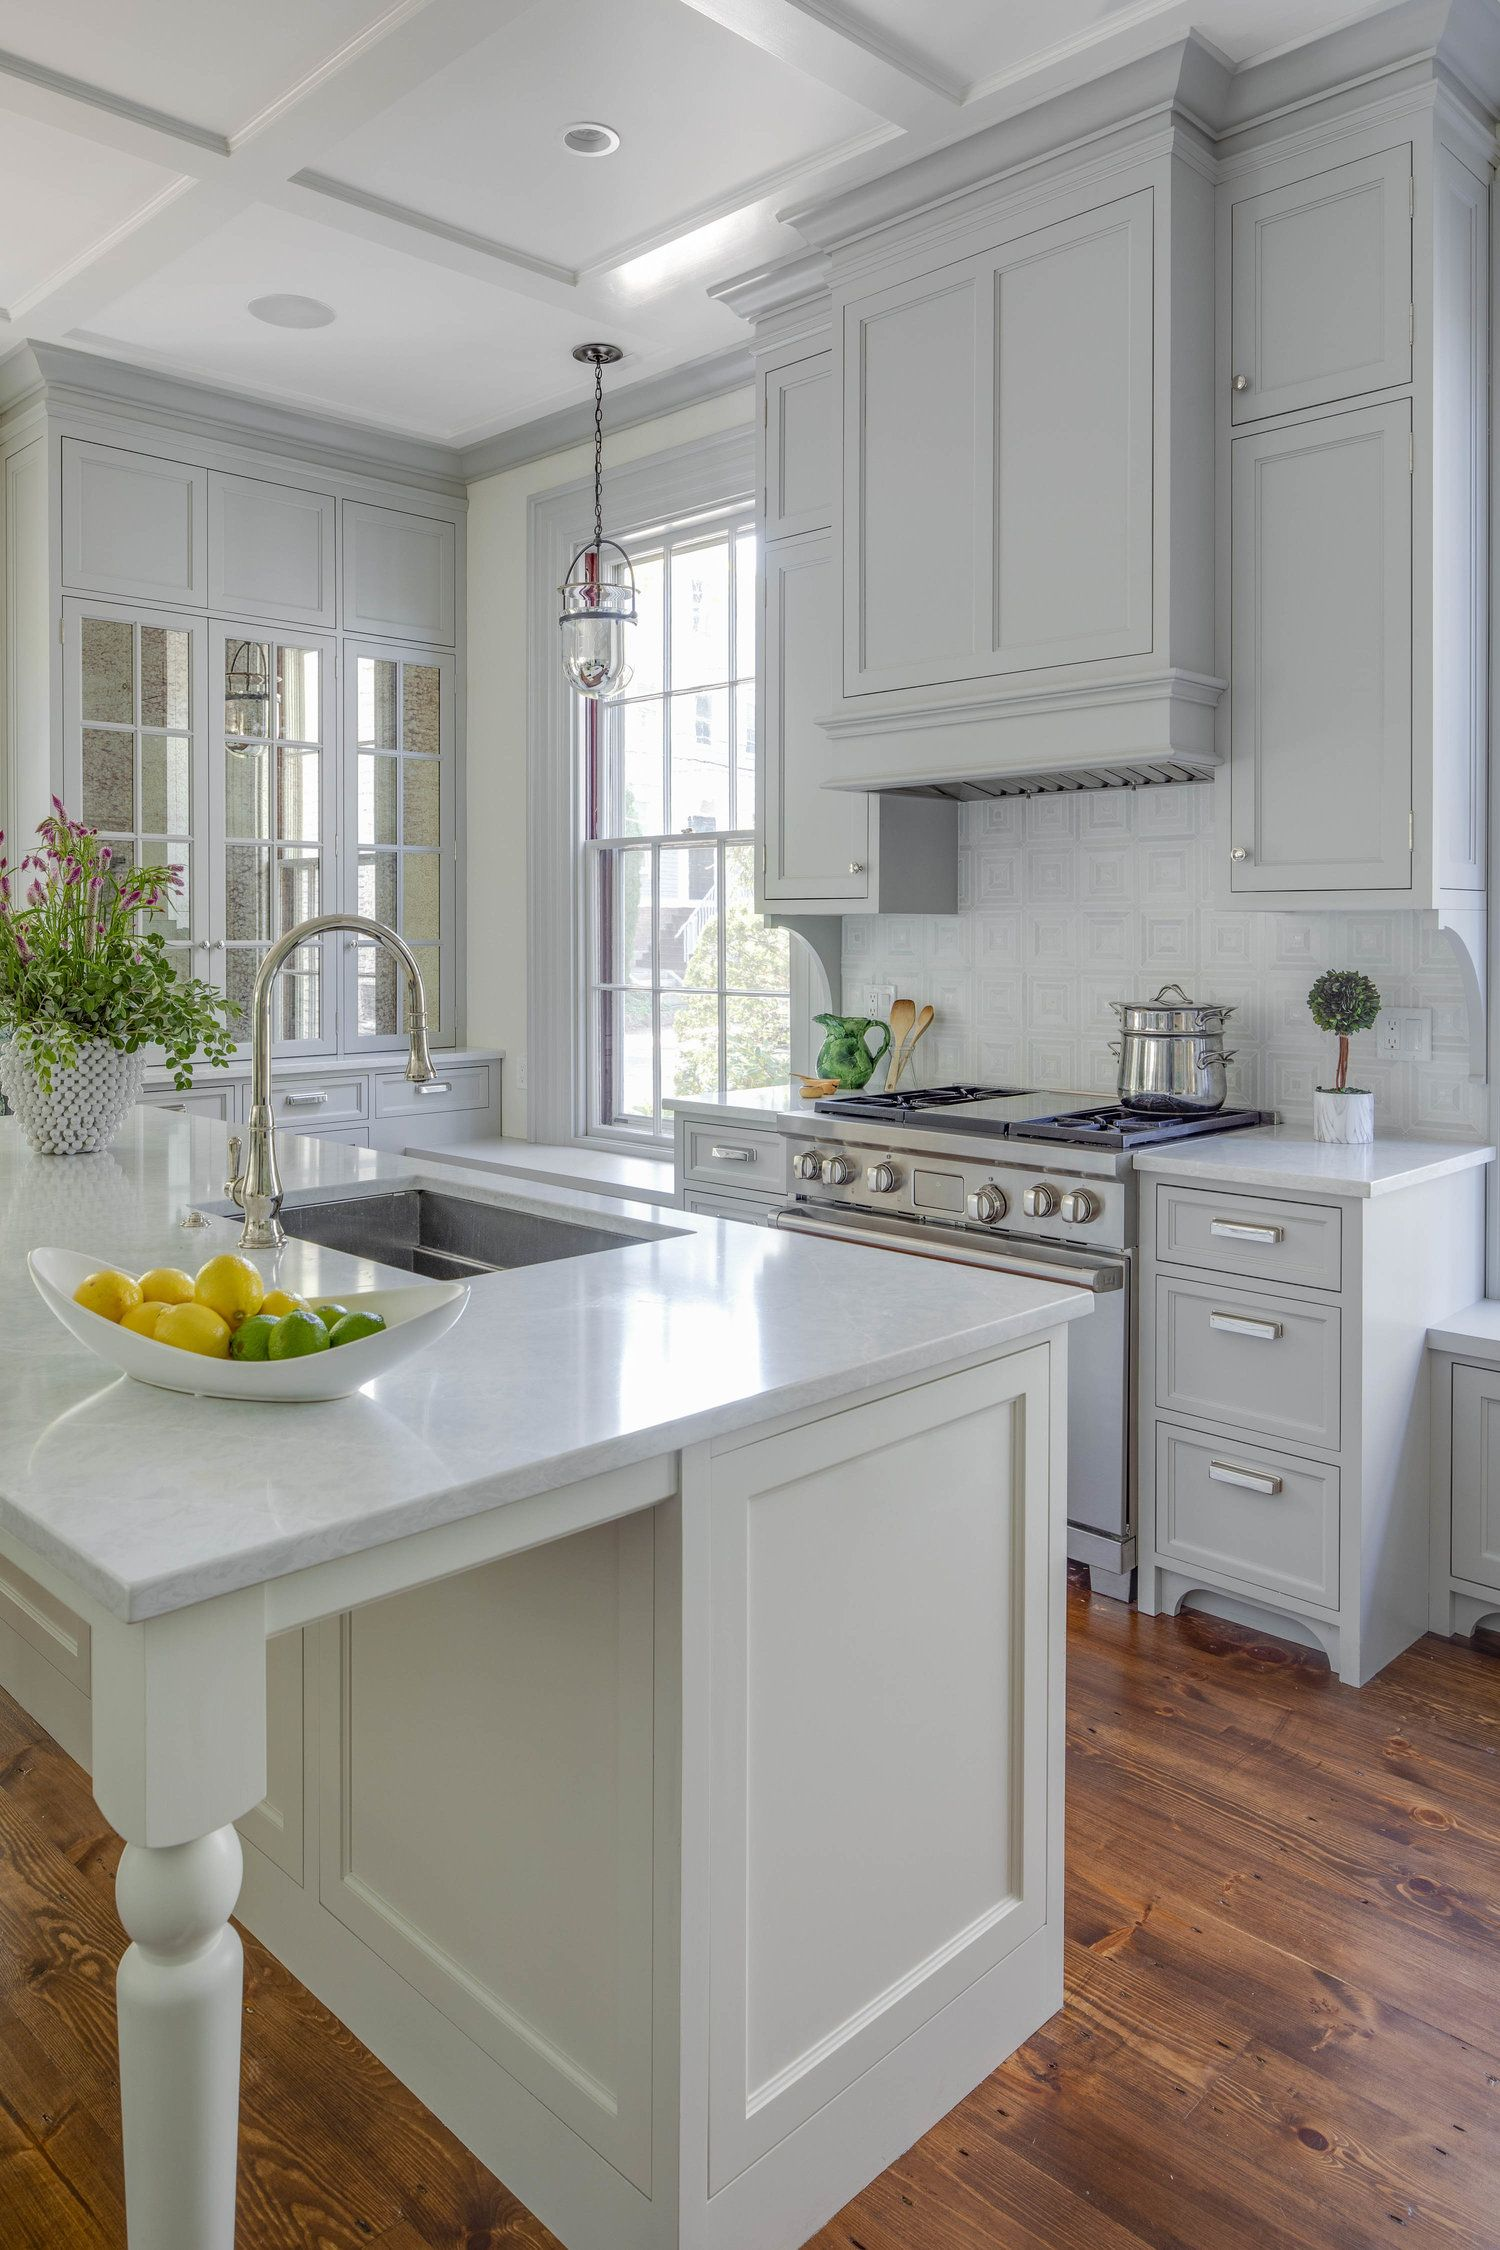 white granite countertops light grey cabinets wood flooring coffered ceiling tradit on kitchen ideas white and grey id=88371